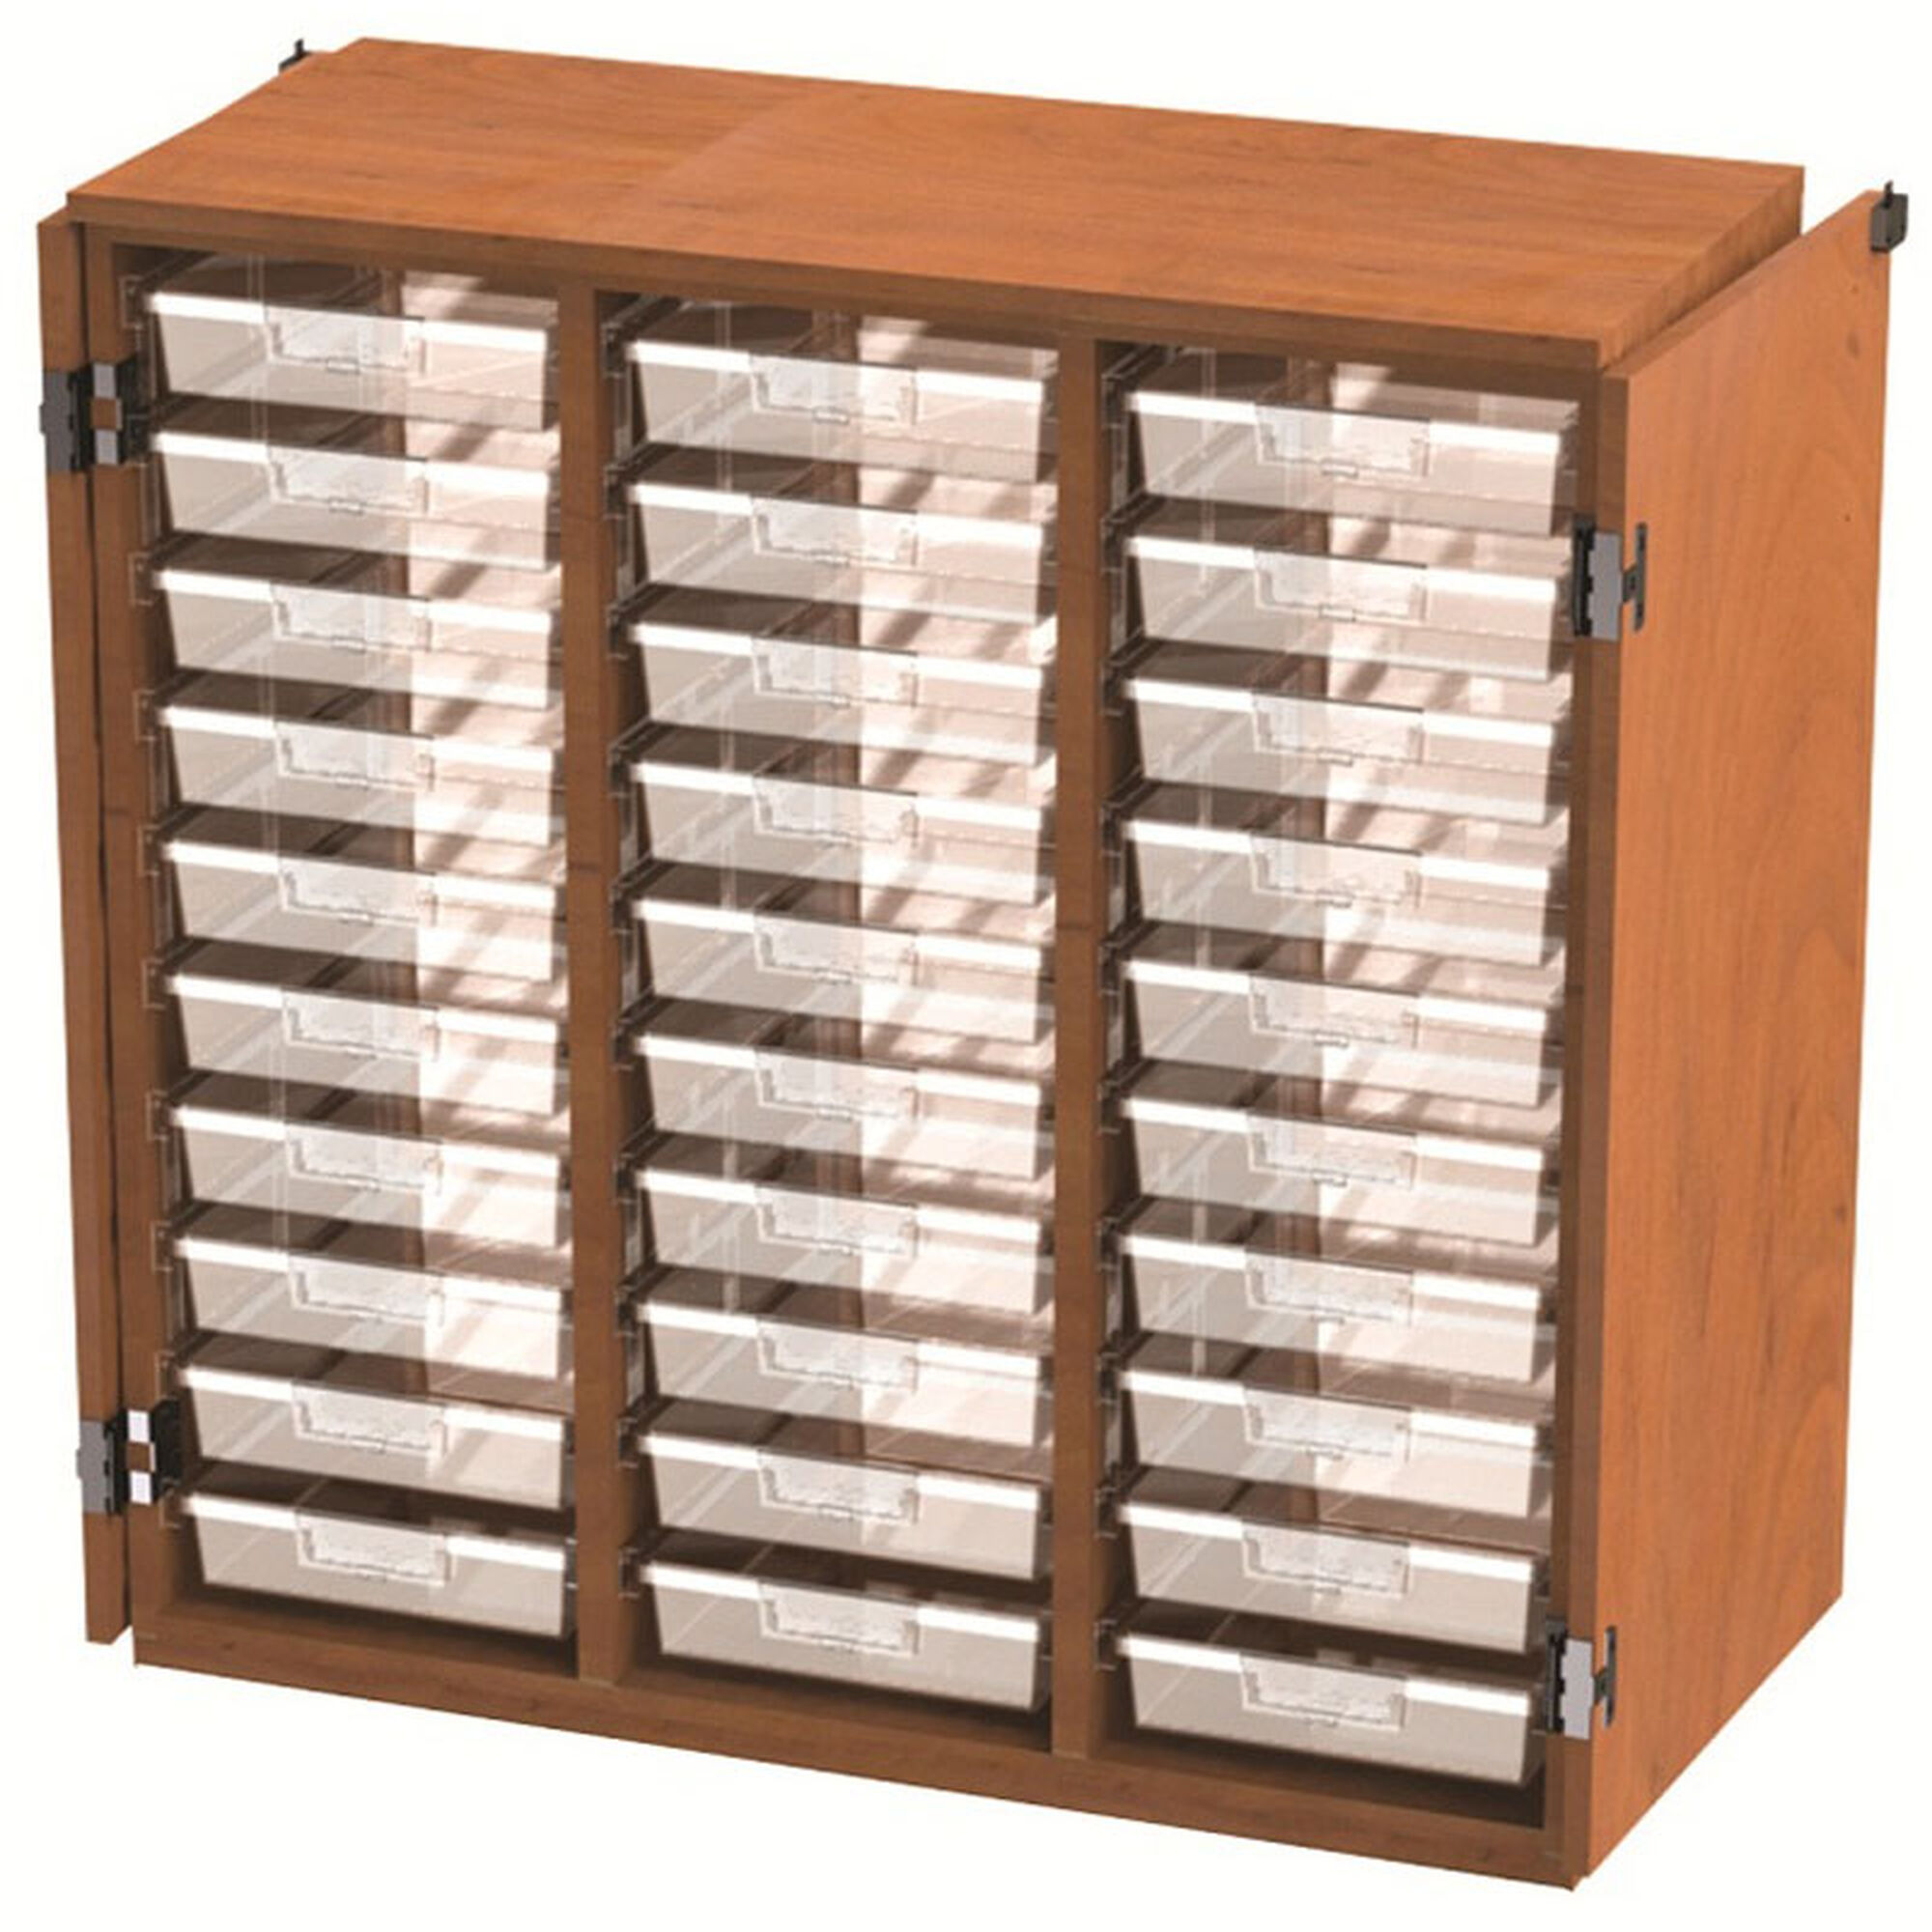 Images Our 30 Tote Tray Storage